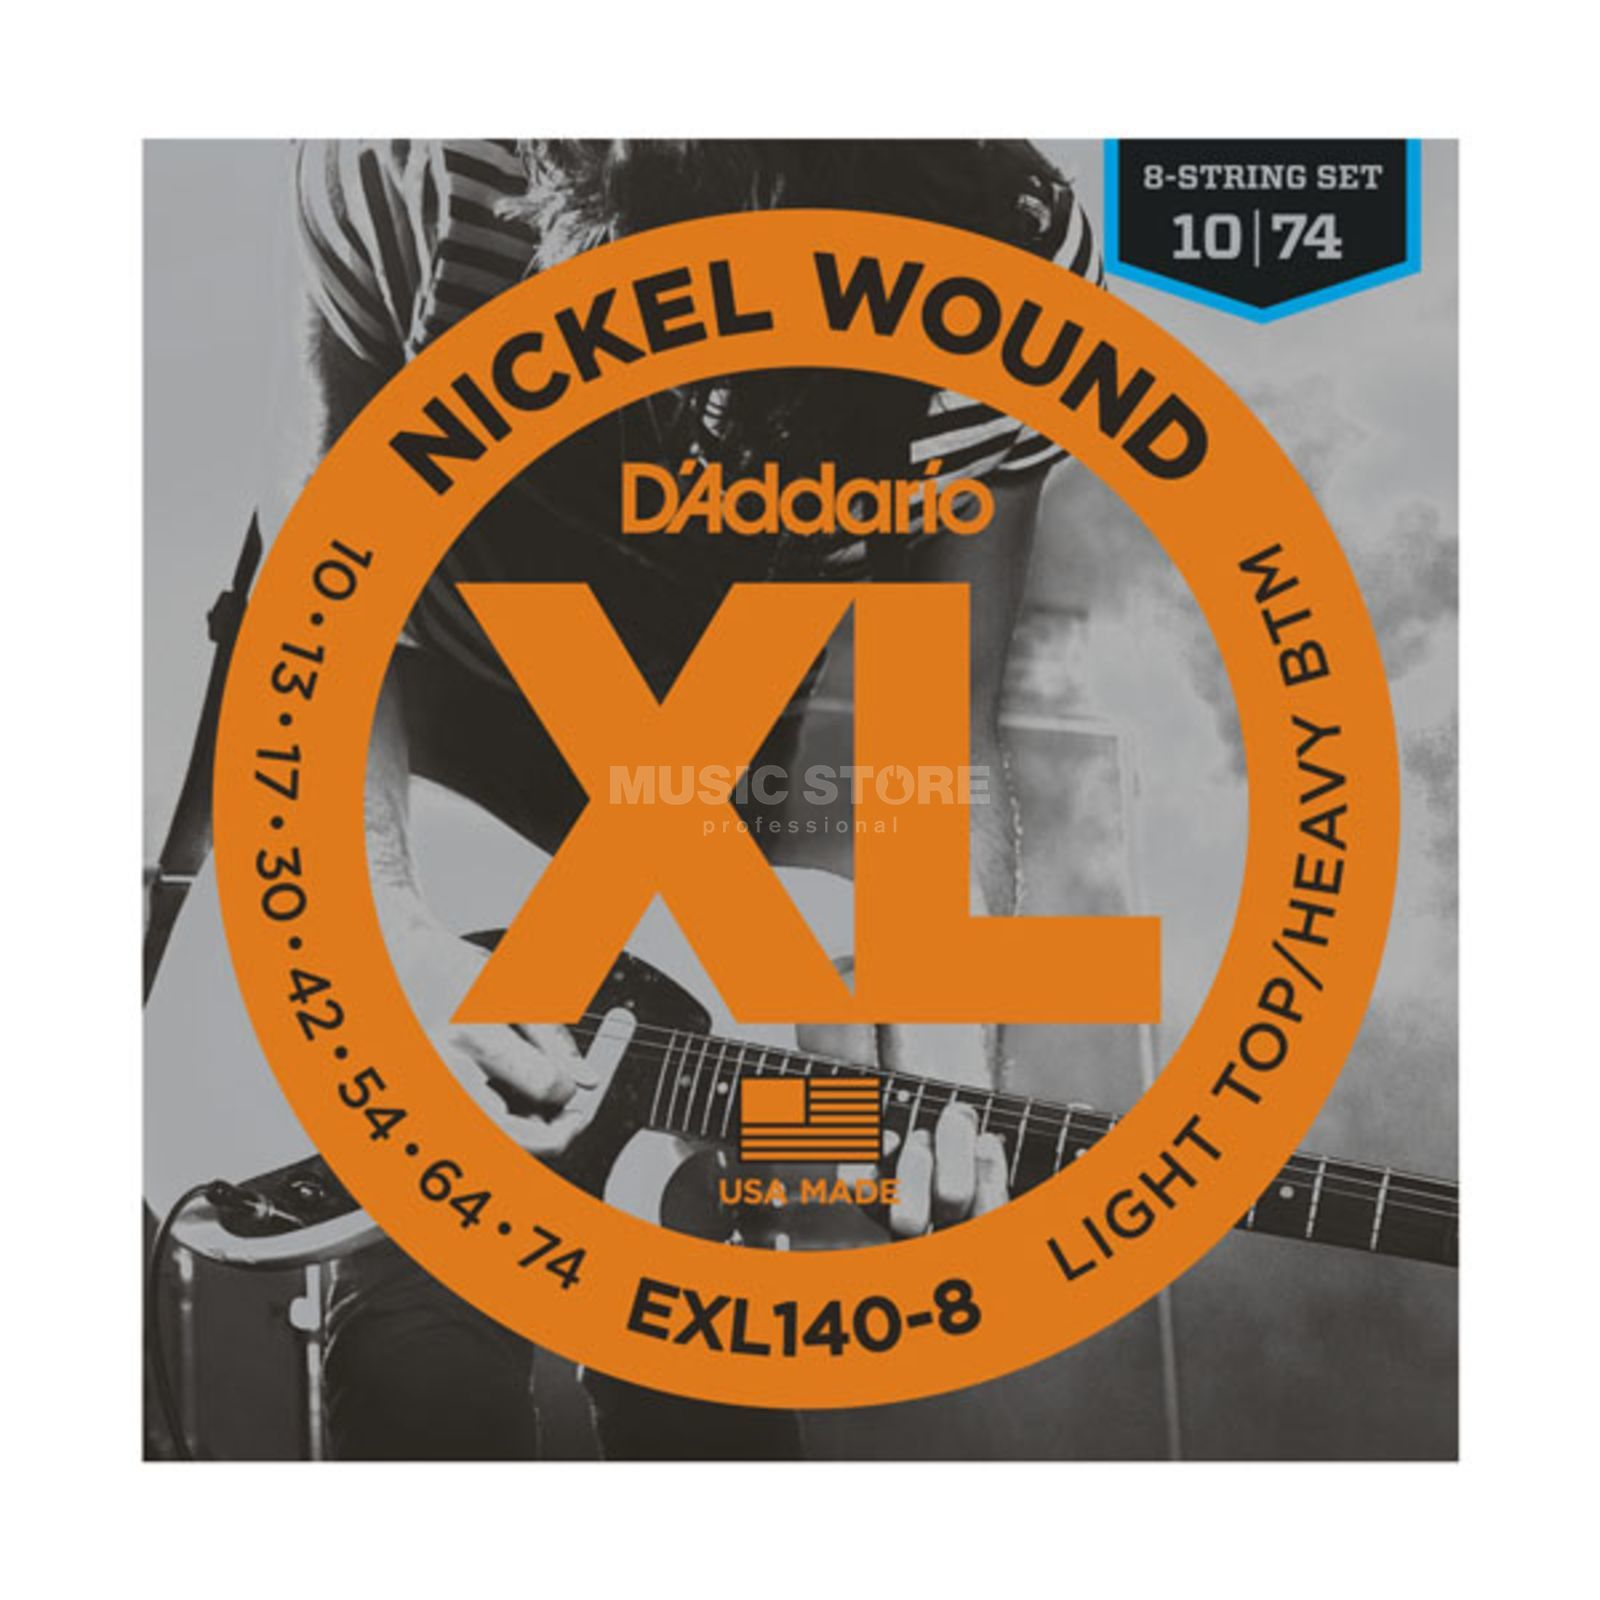 D'Addario E-Guit.Strings EXL140-8 10-74 Nickel Wound 8-String Produktbillede